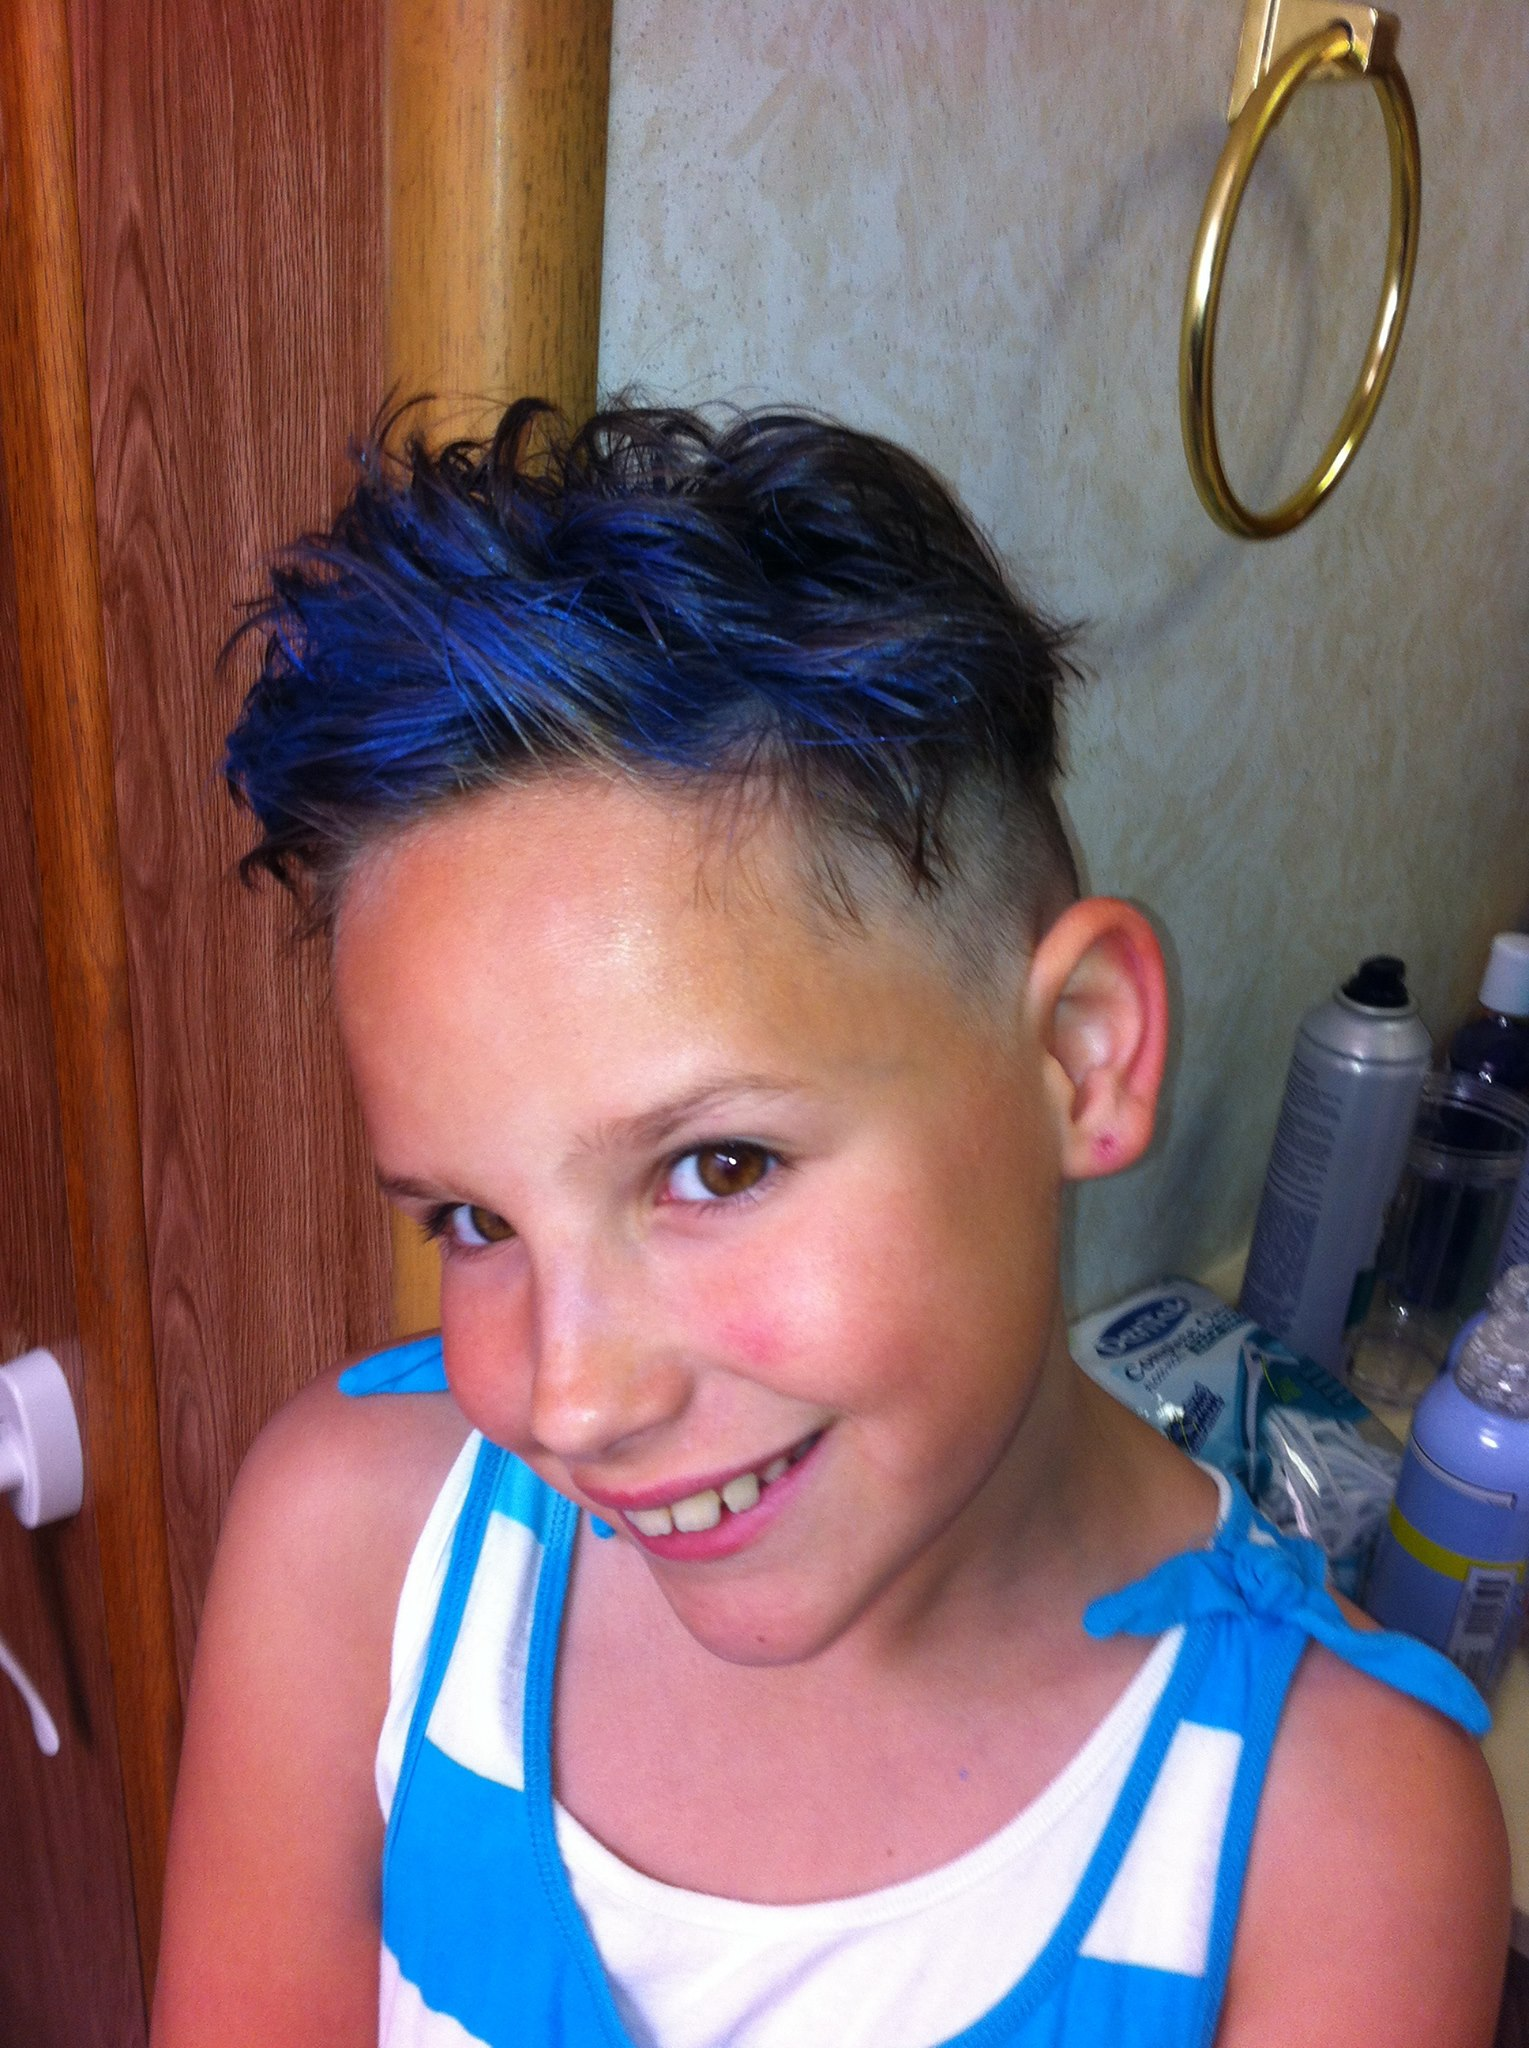 Spiky blue hair.